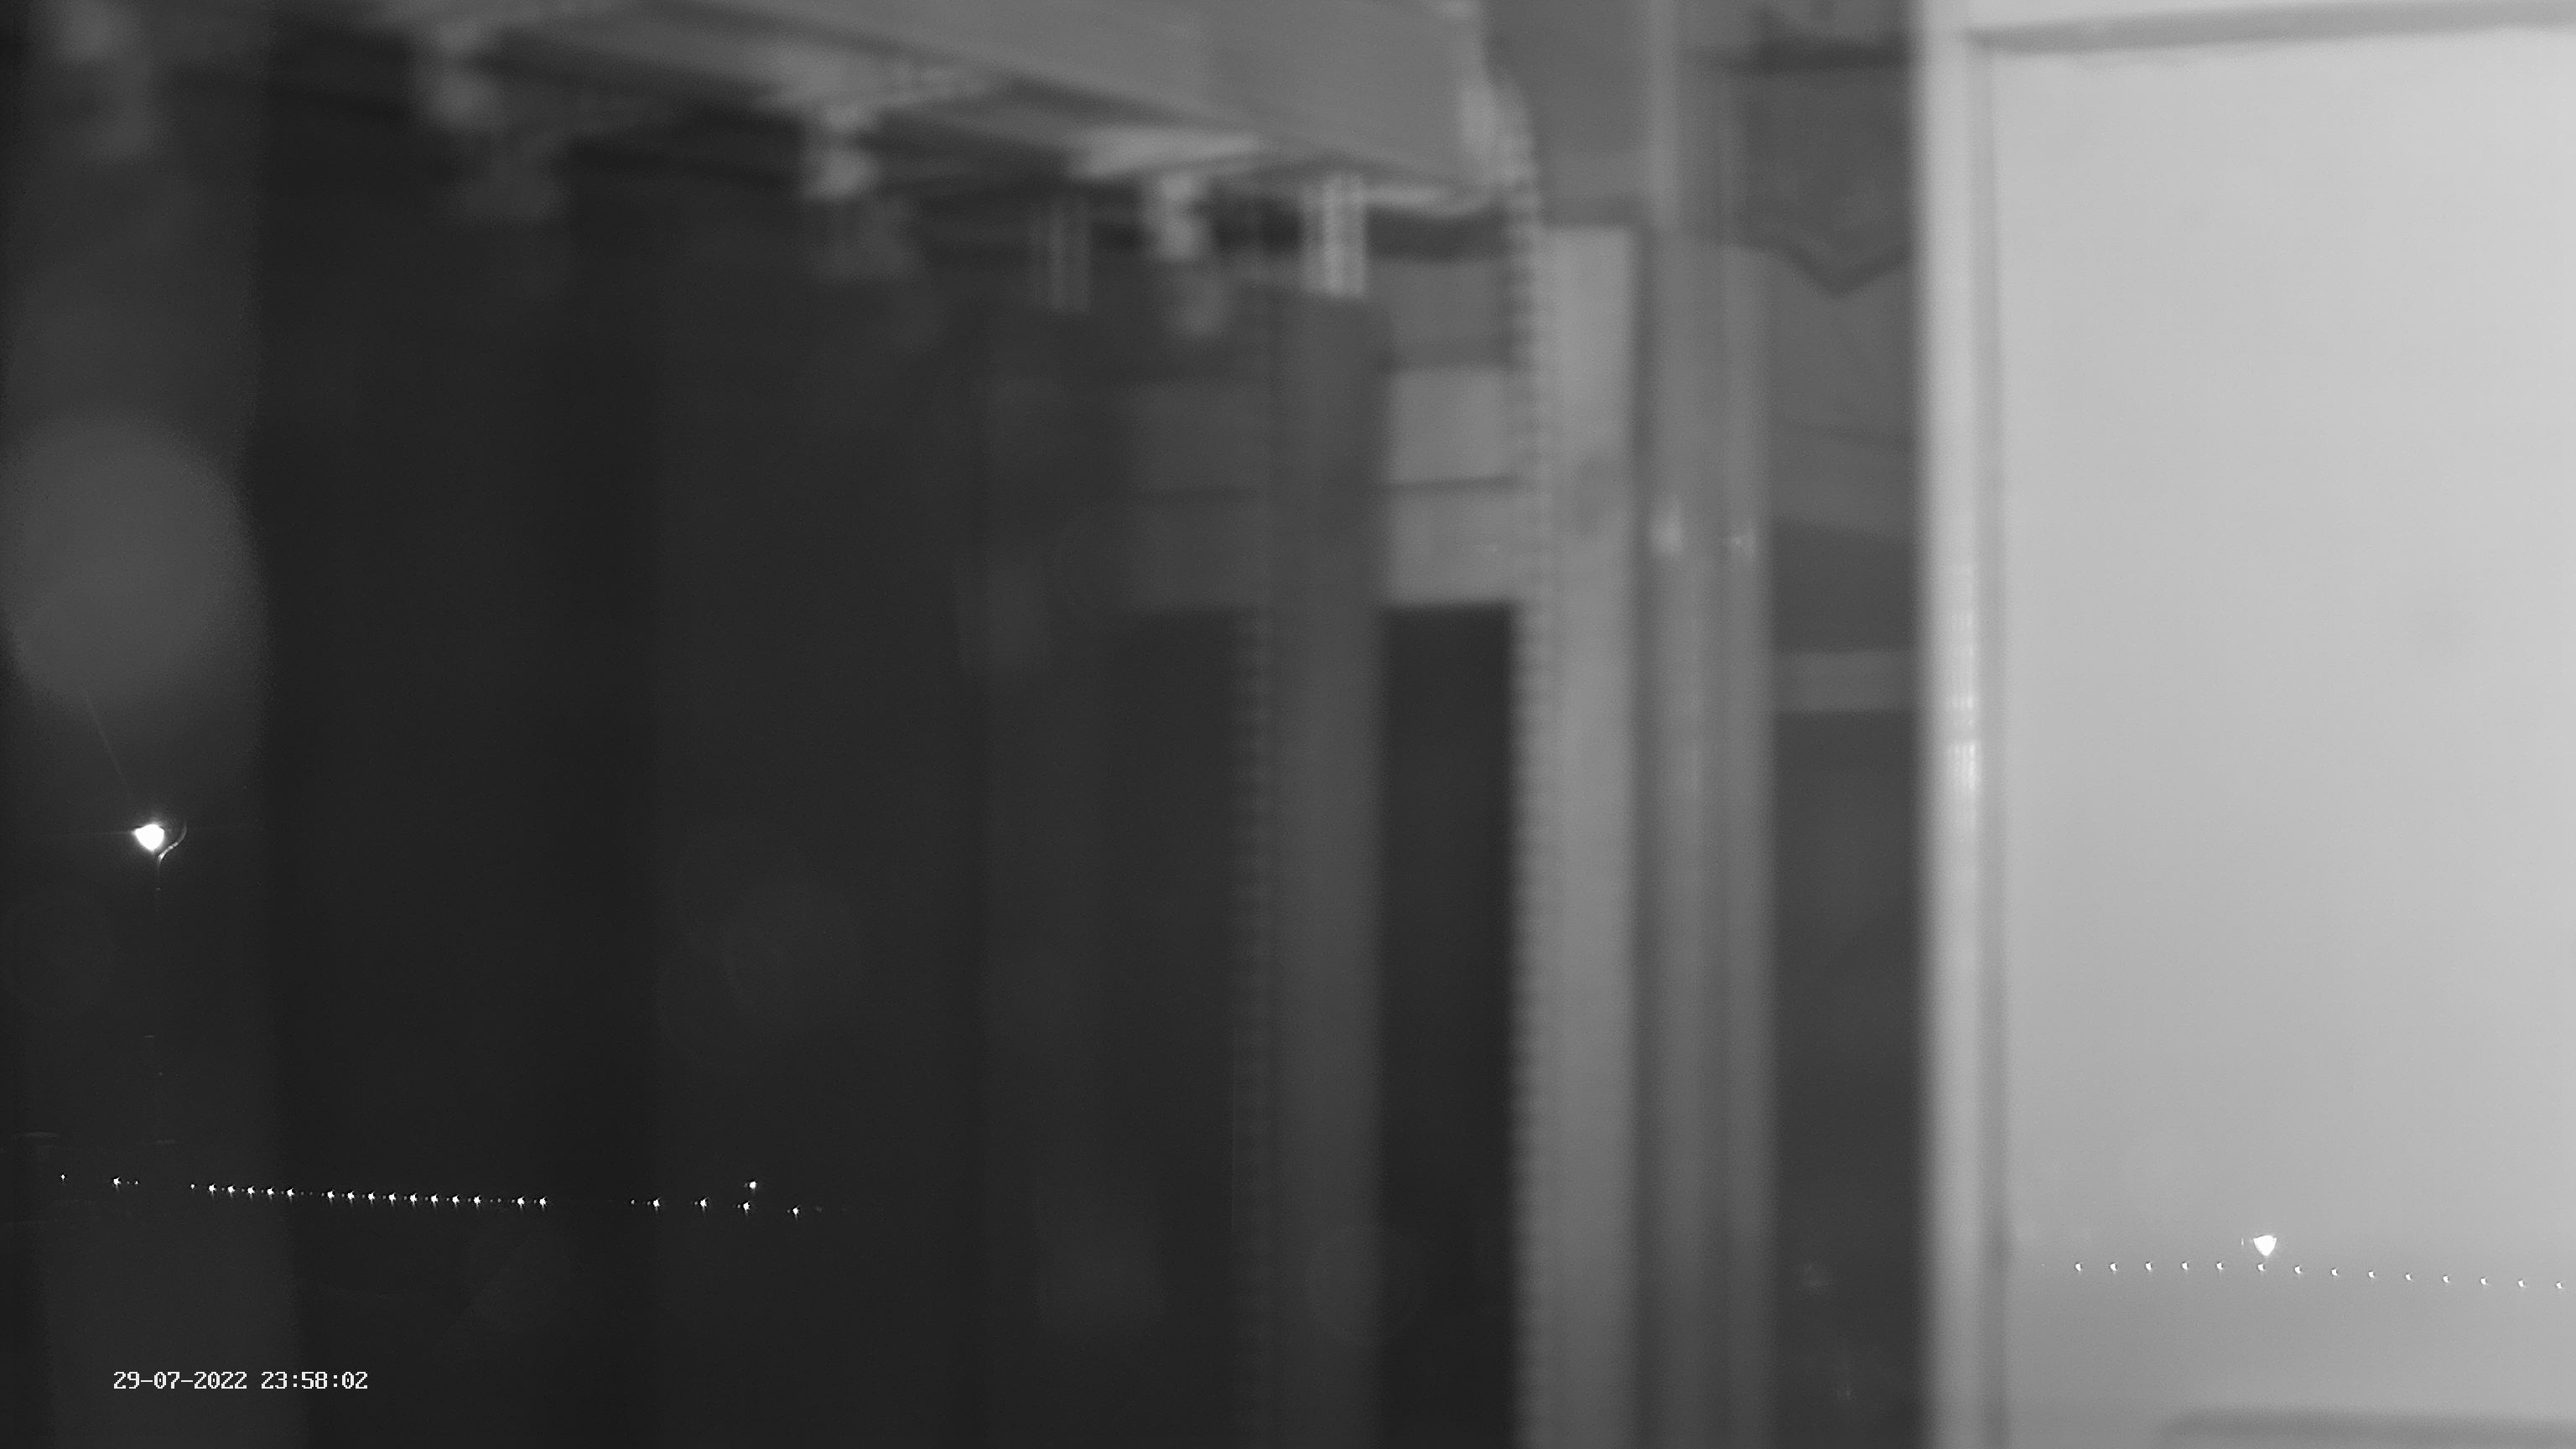 Latest webcam image - Filey Brigg